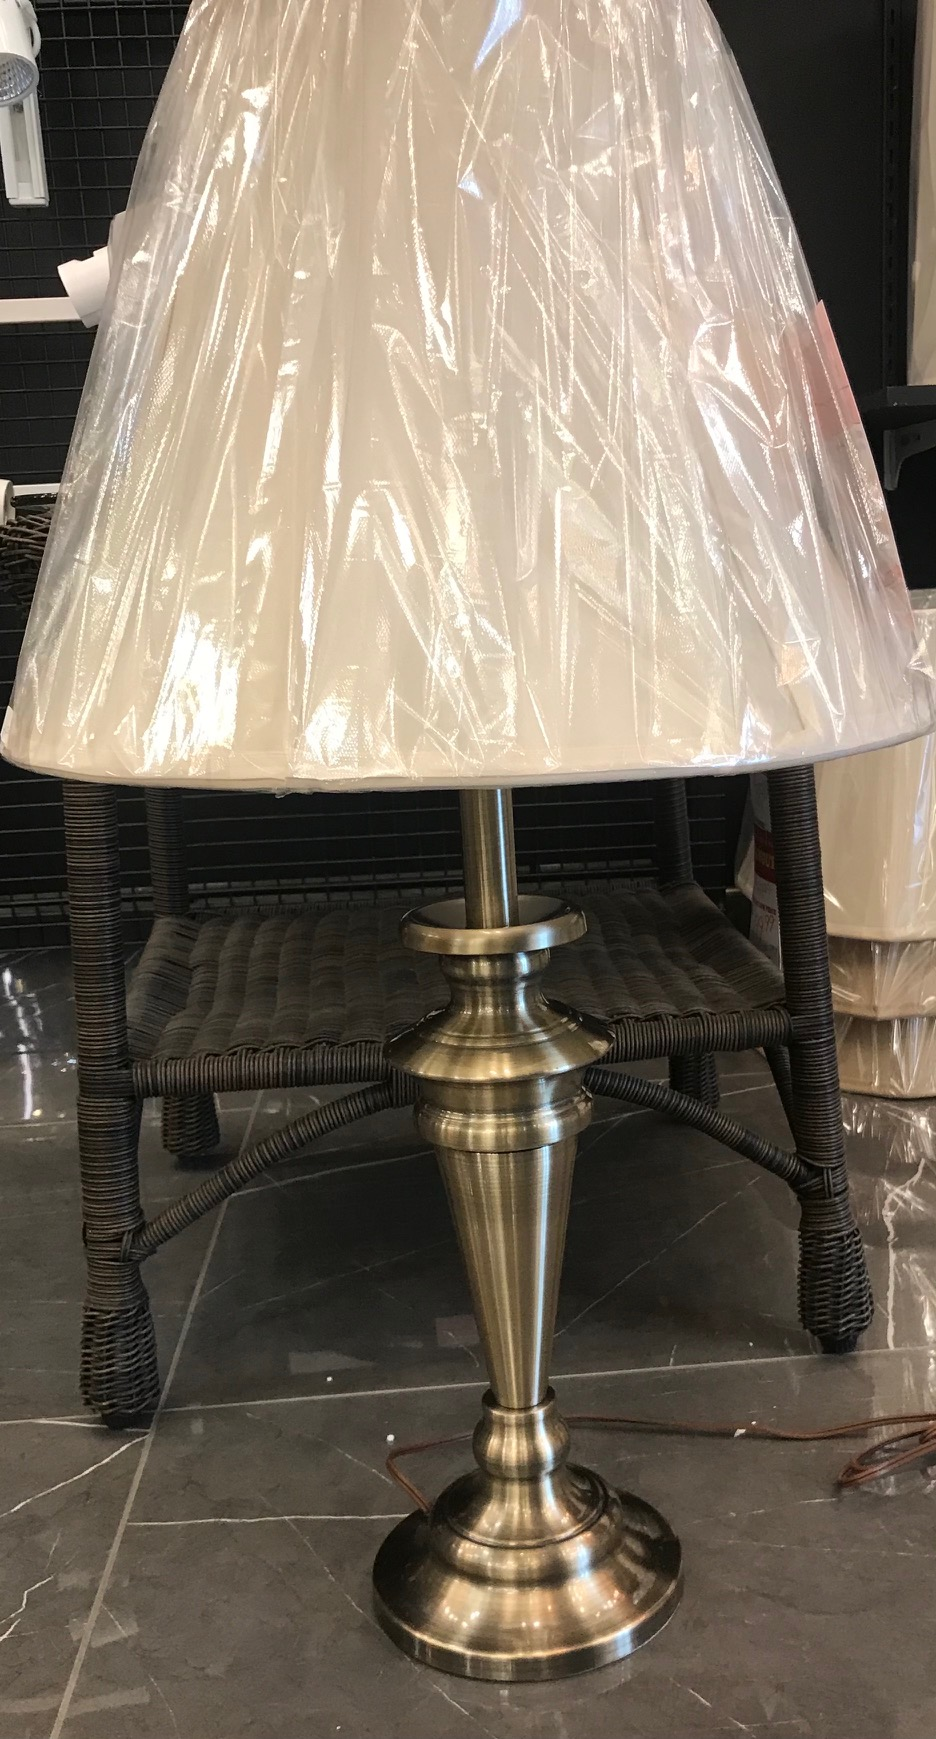 40190 Table Lamp Made in Canada Available in Antique Brass or Brushed Chrome Regular Price $236.99 Sale Price $165.99